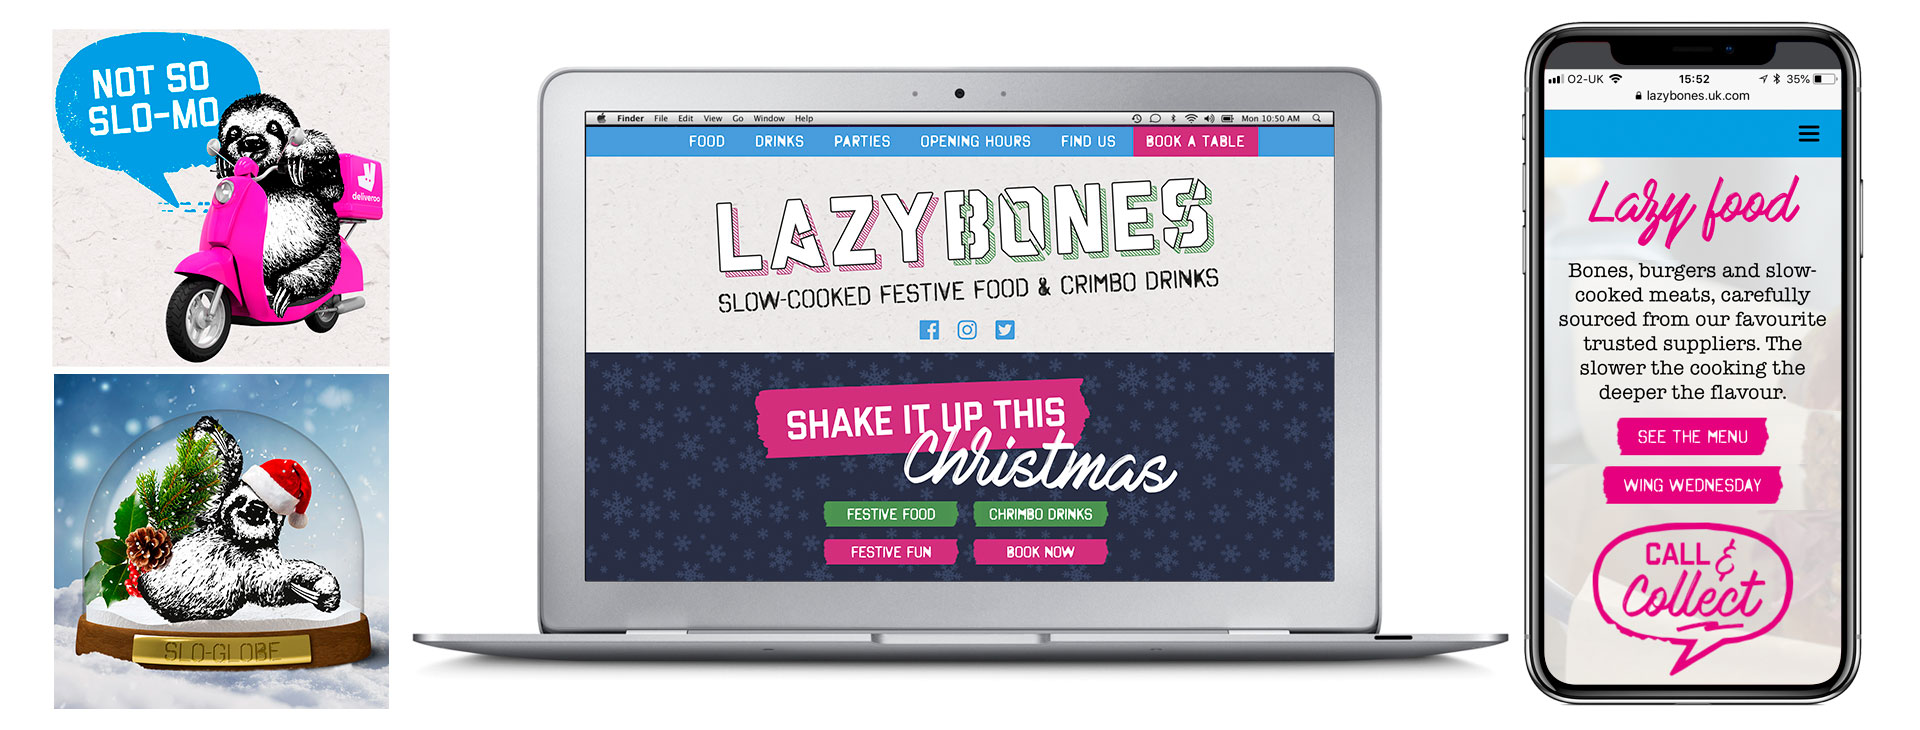 Scrolling website design for Lazybones wine bar and restaurant